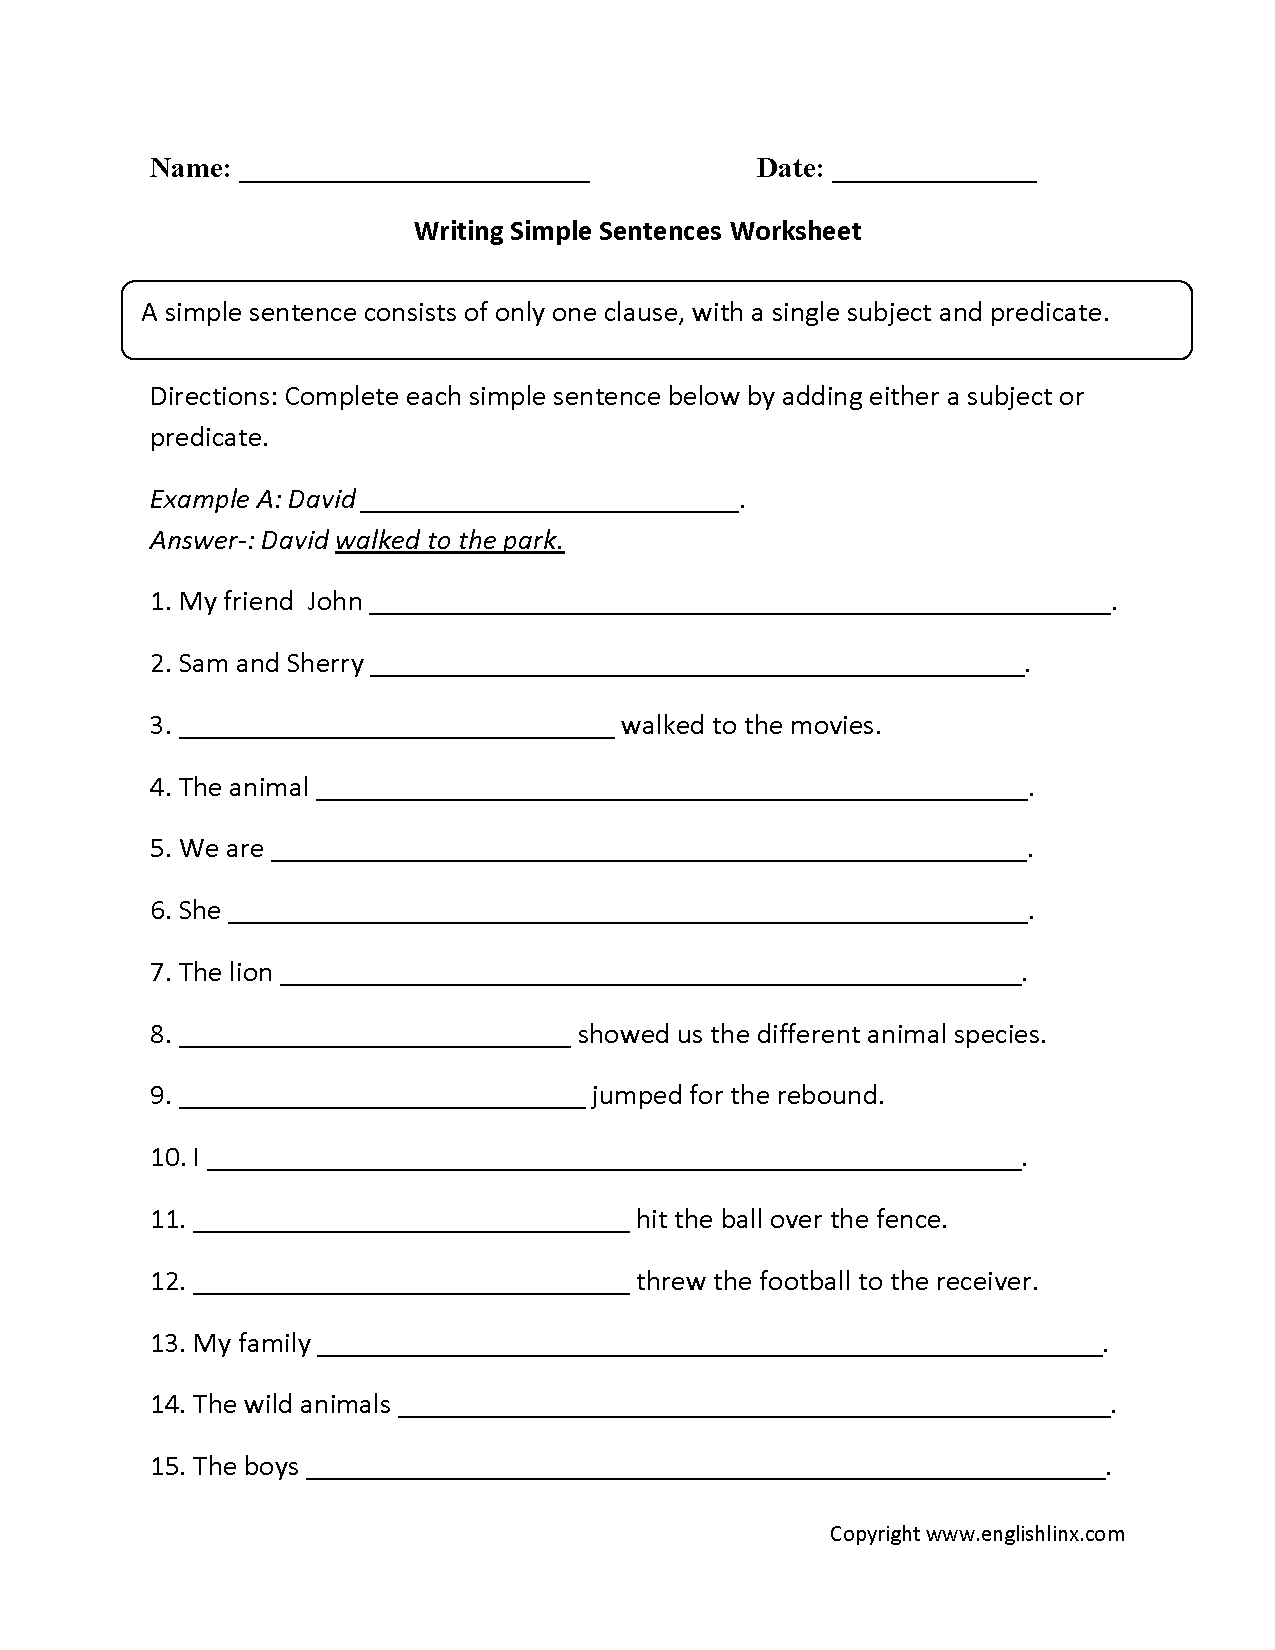 Worksheets Kinds Of Sentences Worksheet sentences worksheets simple worksheet